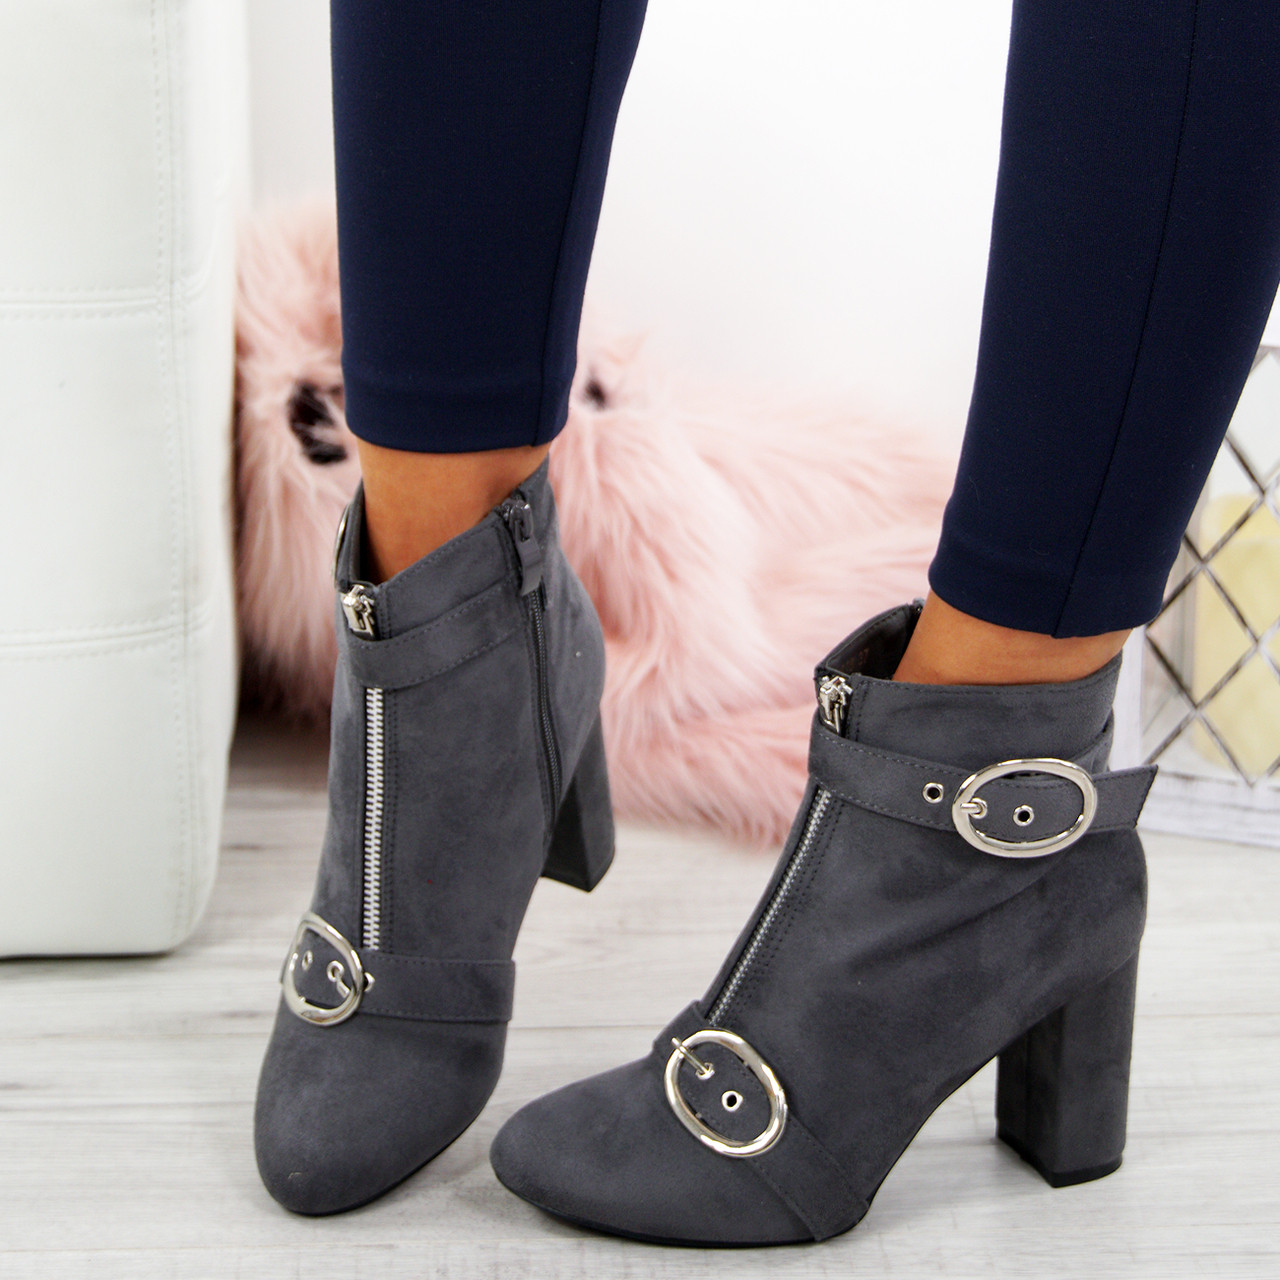 cd7309e416f Finley Grey Block Heel Ankle Boots